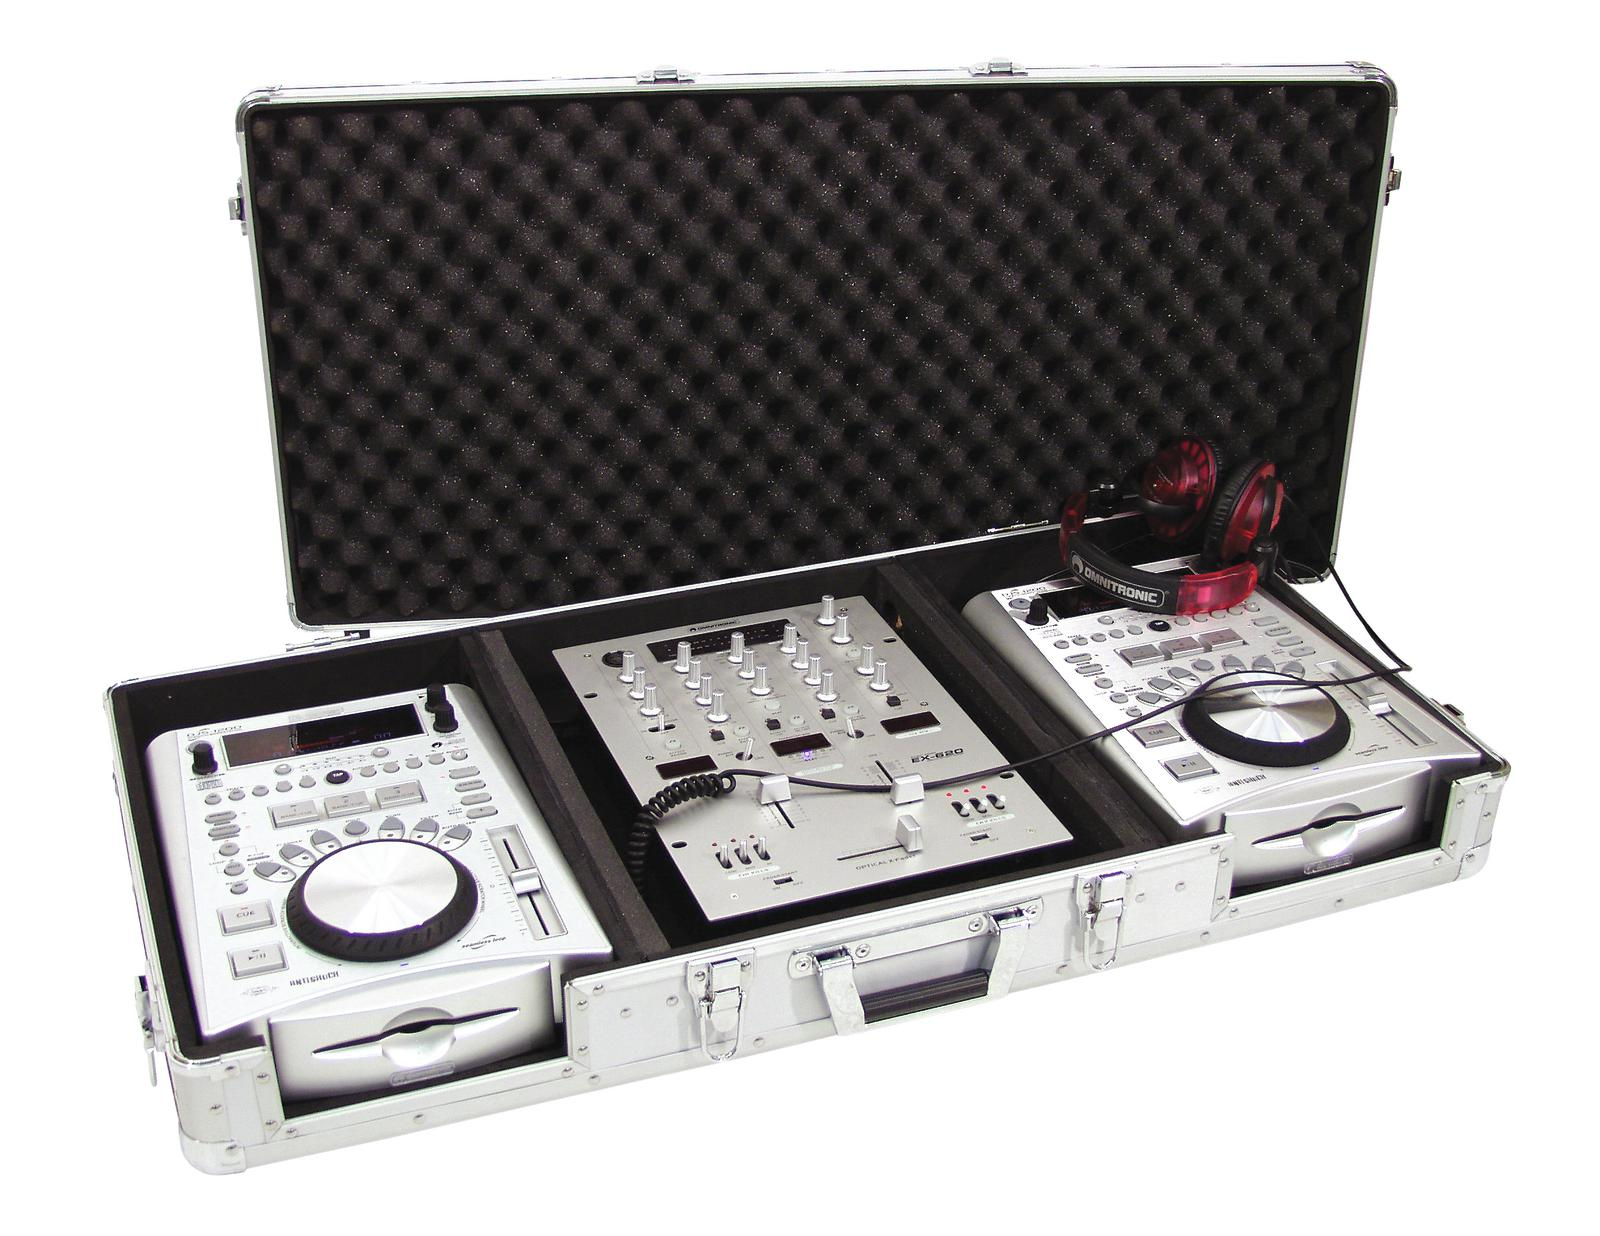 Flight Case Custodia Per Console Cdj Mixer Pc ROADINGER DIGI-1 2xCD/1xM-12 sil